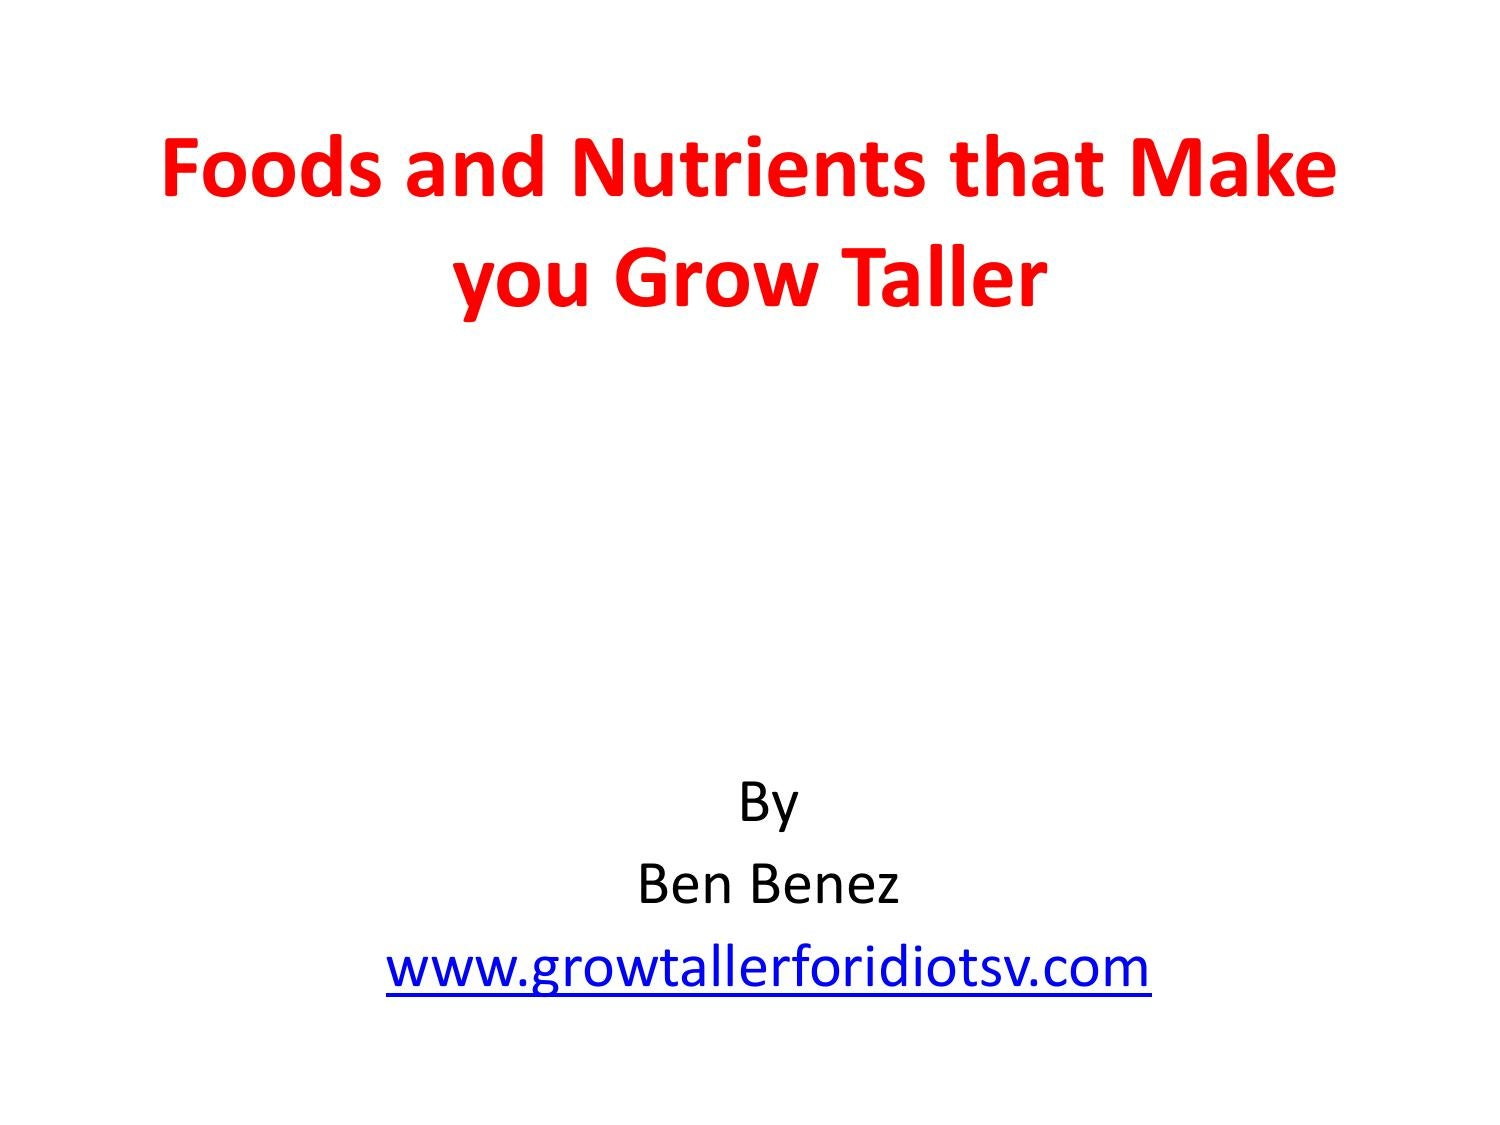 Foods And Nutrients That Make You Grow Taller By Growtaller4updf Issuu